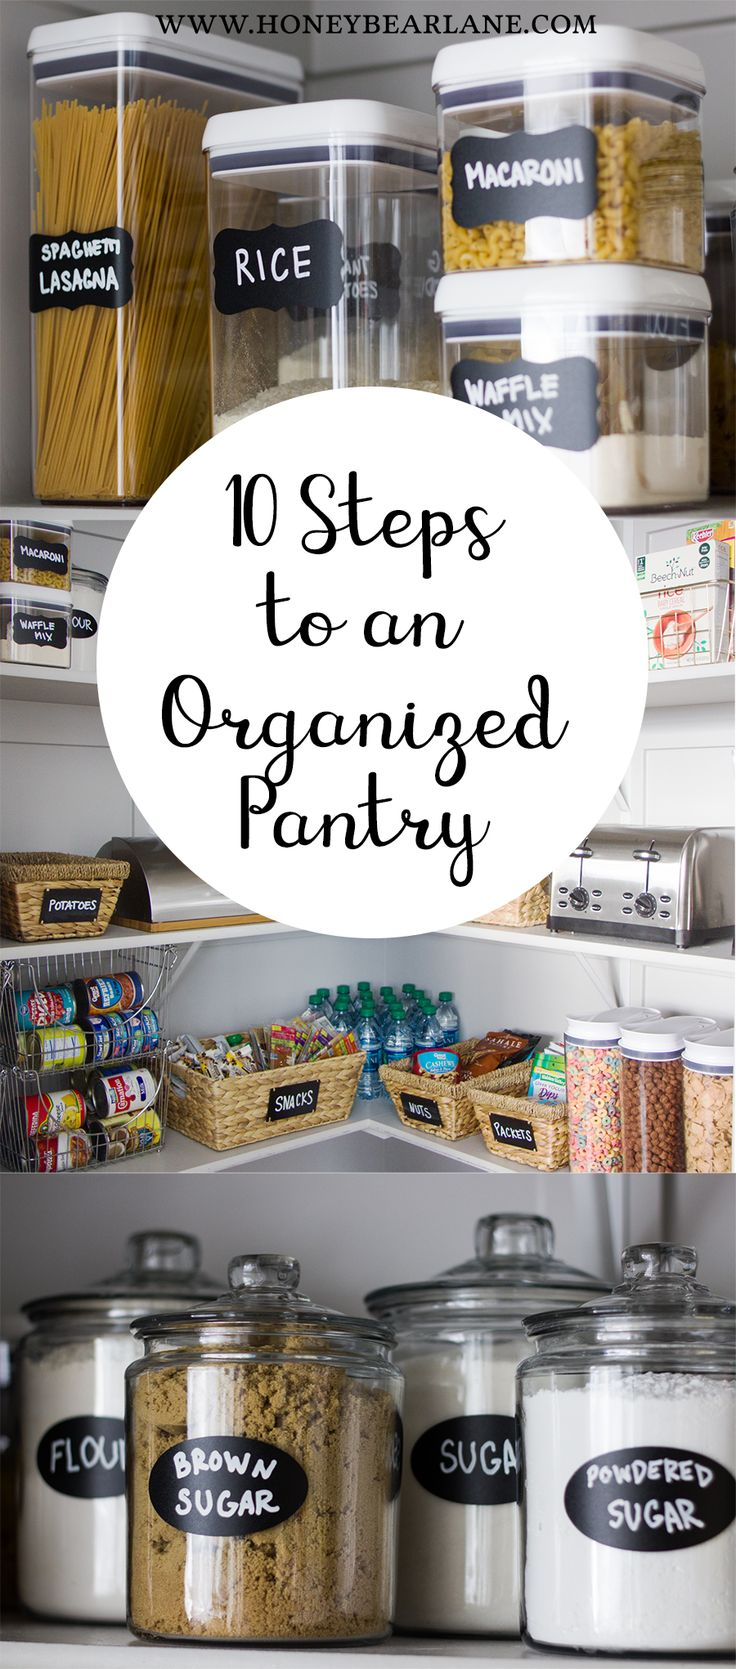 Ideas for kitchen organization - 10 Steps To An Organized Pantry